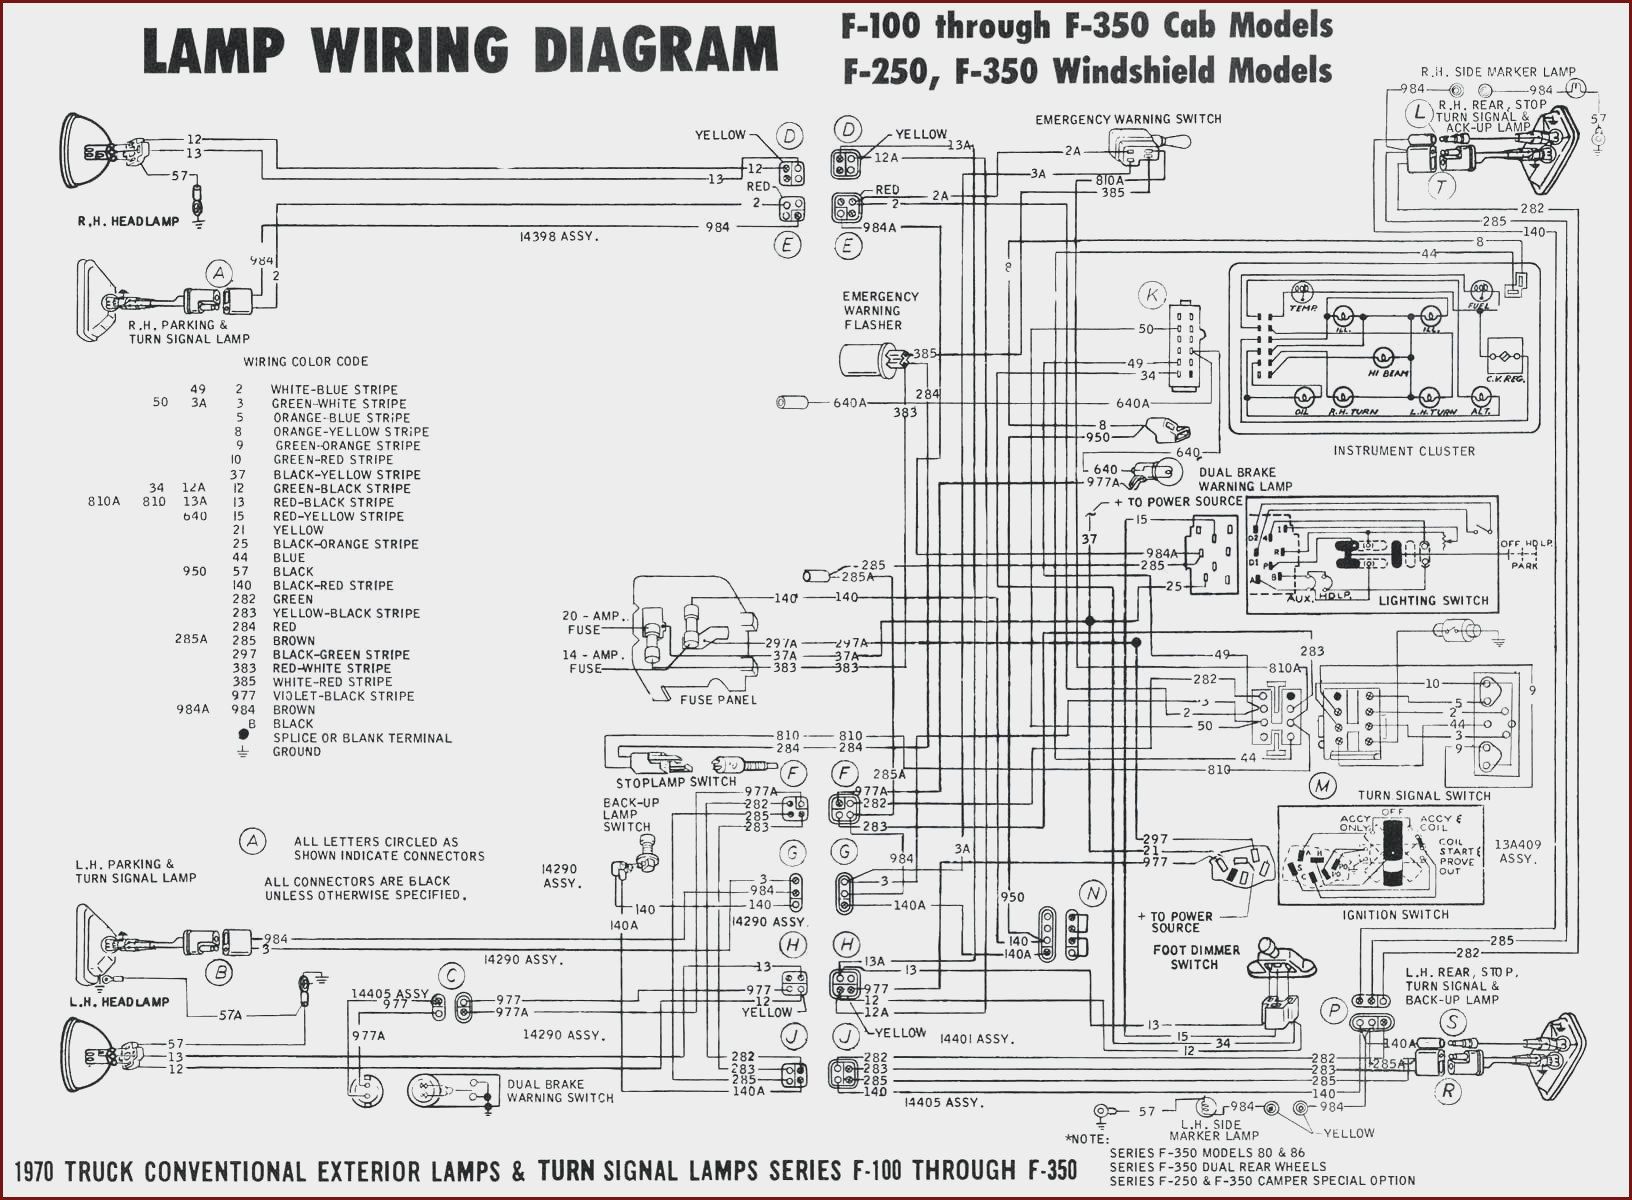 Car Engine Diagram for Driving Test Car Engine Diagram Poster at Manuals Library Of Car Engine Diagram for Driving Test